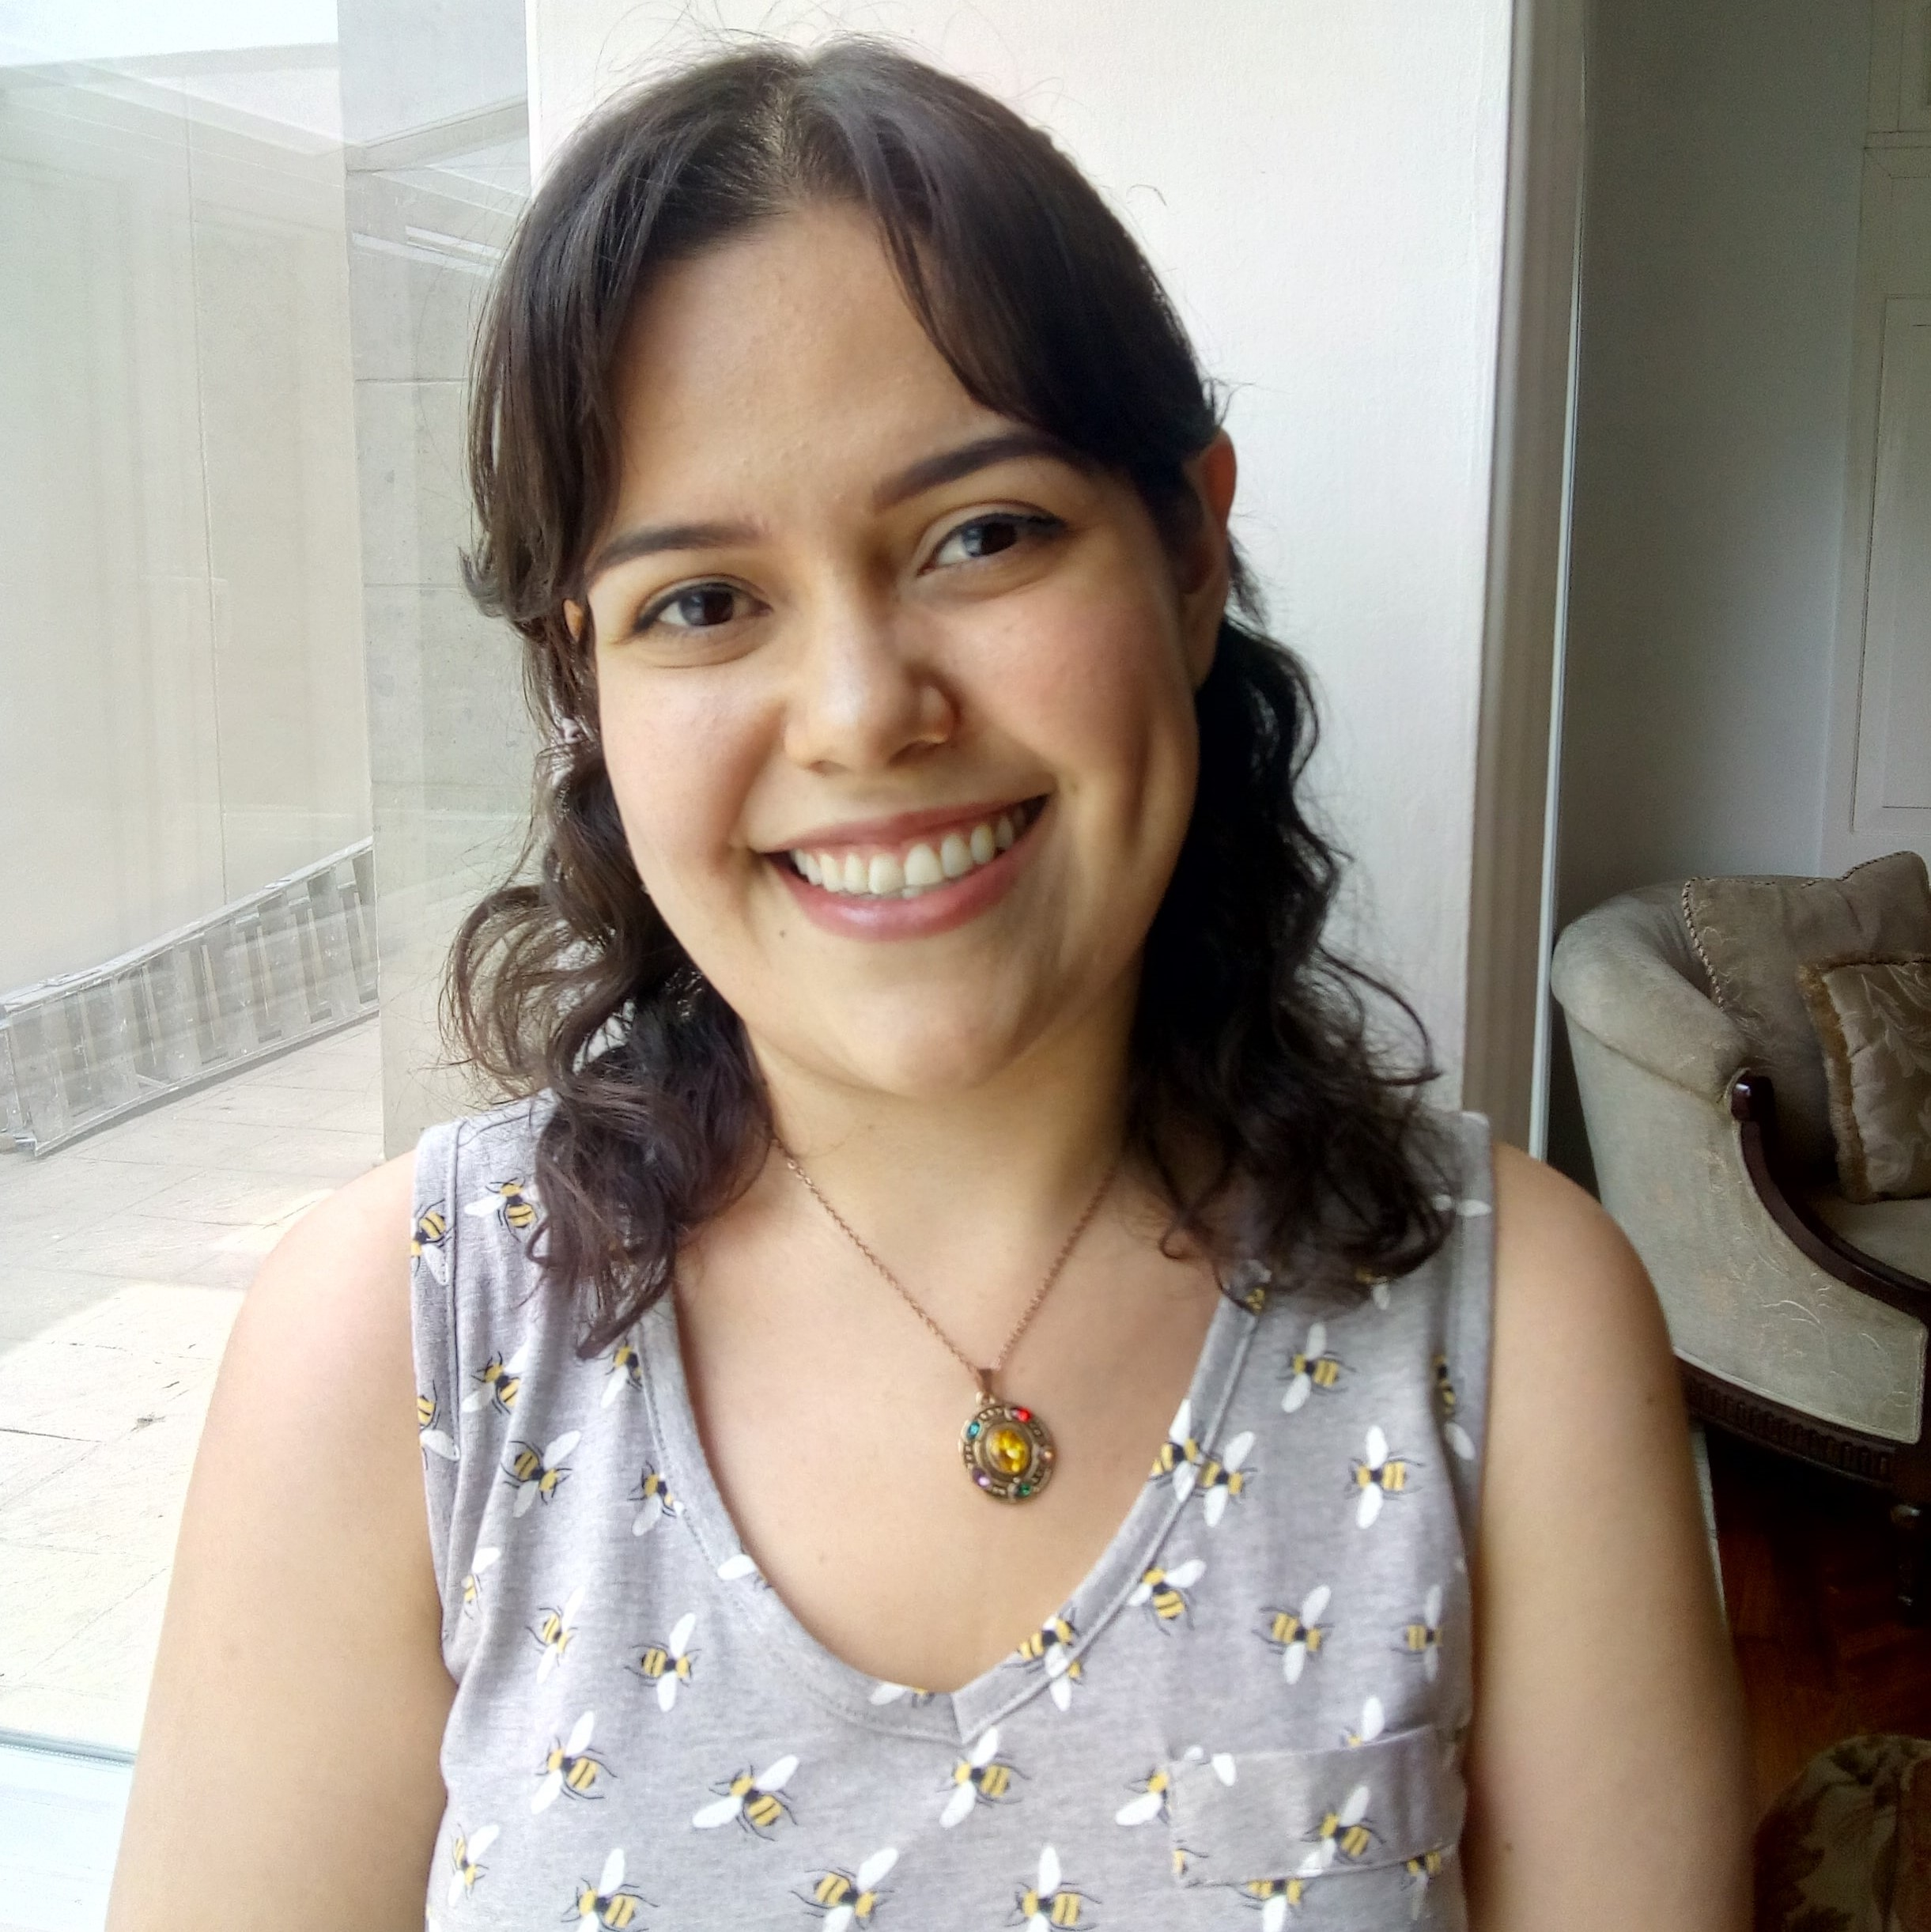 photo of a woman in a pale purple shirt with dark hair